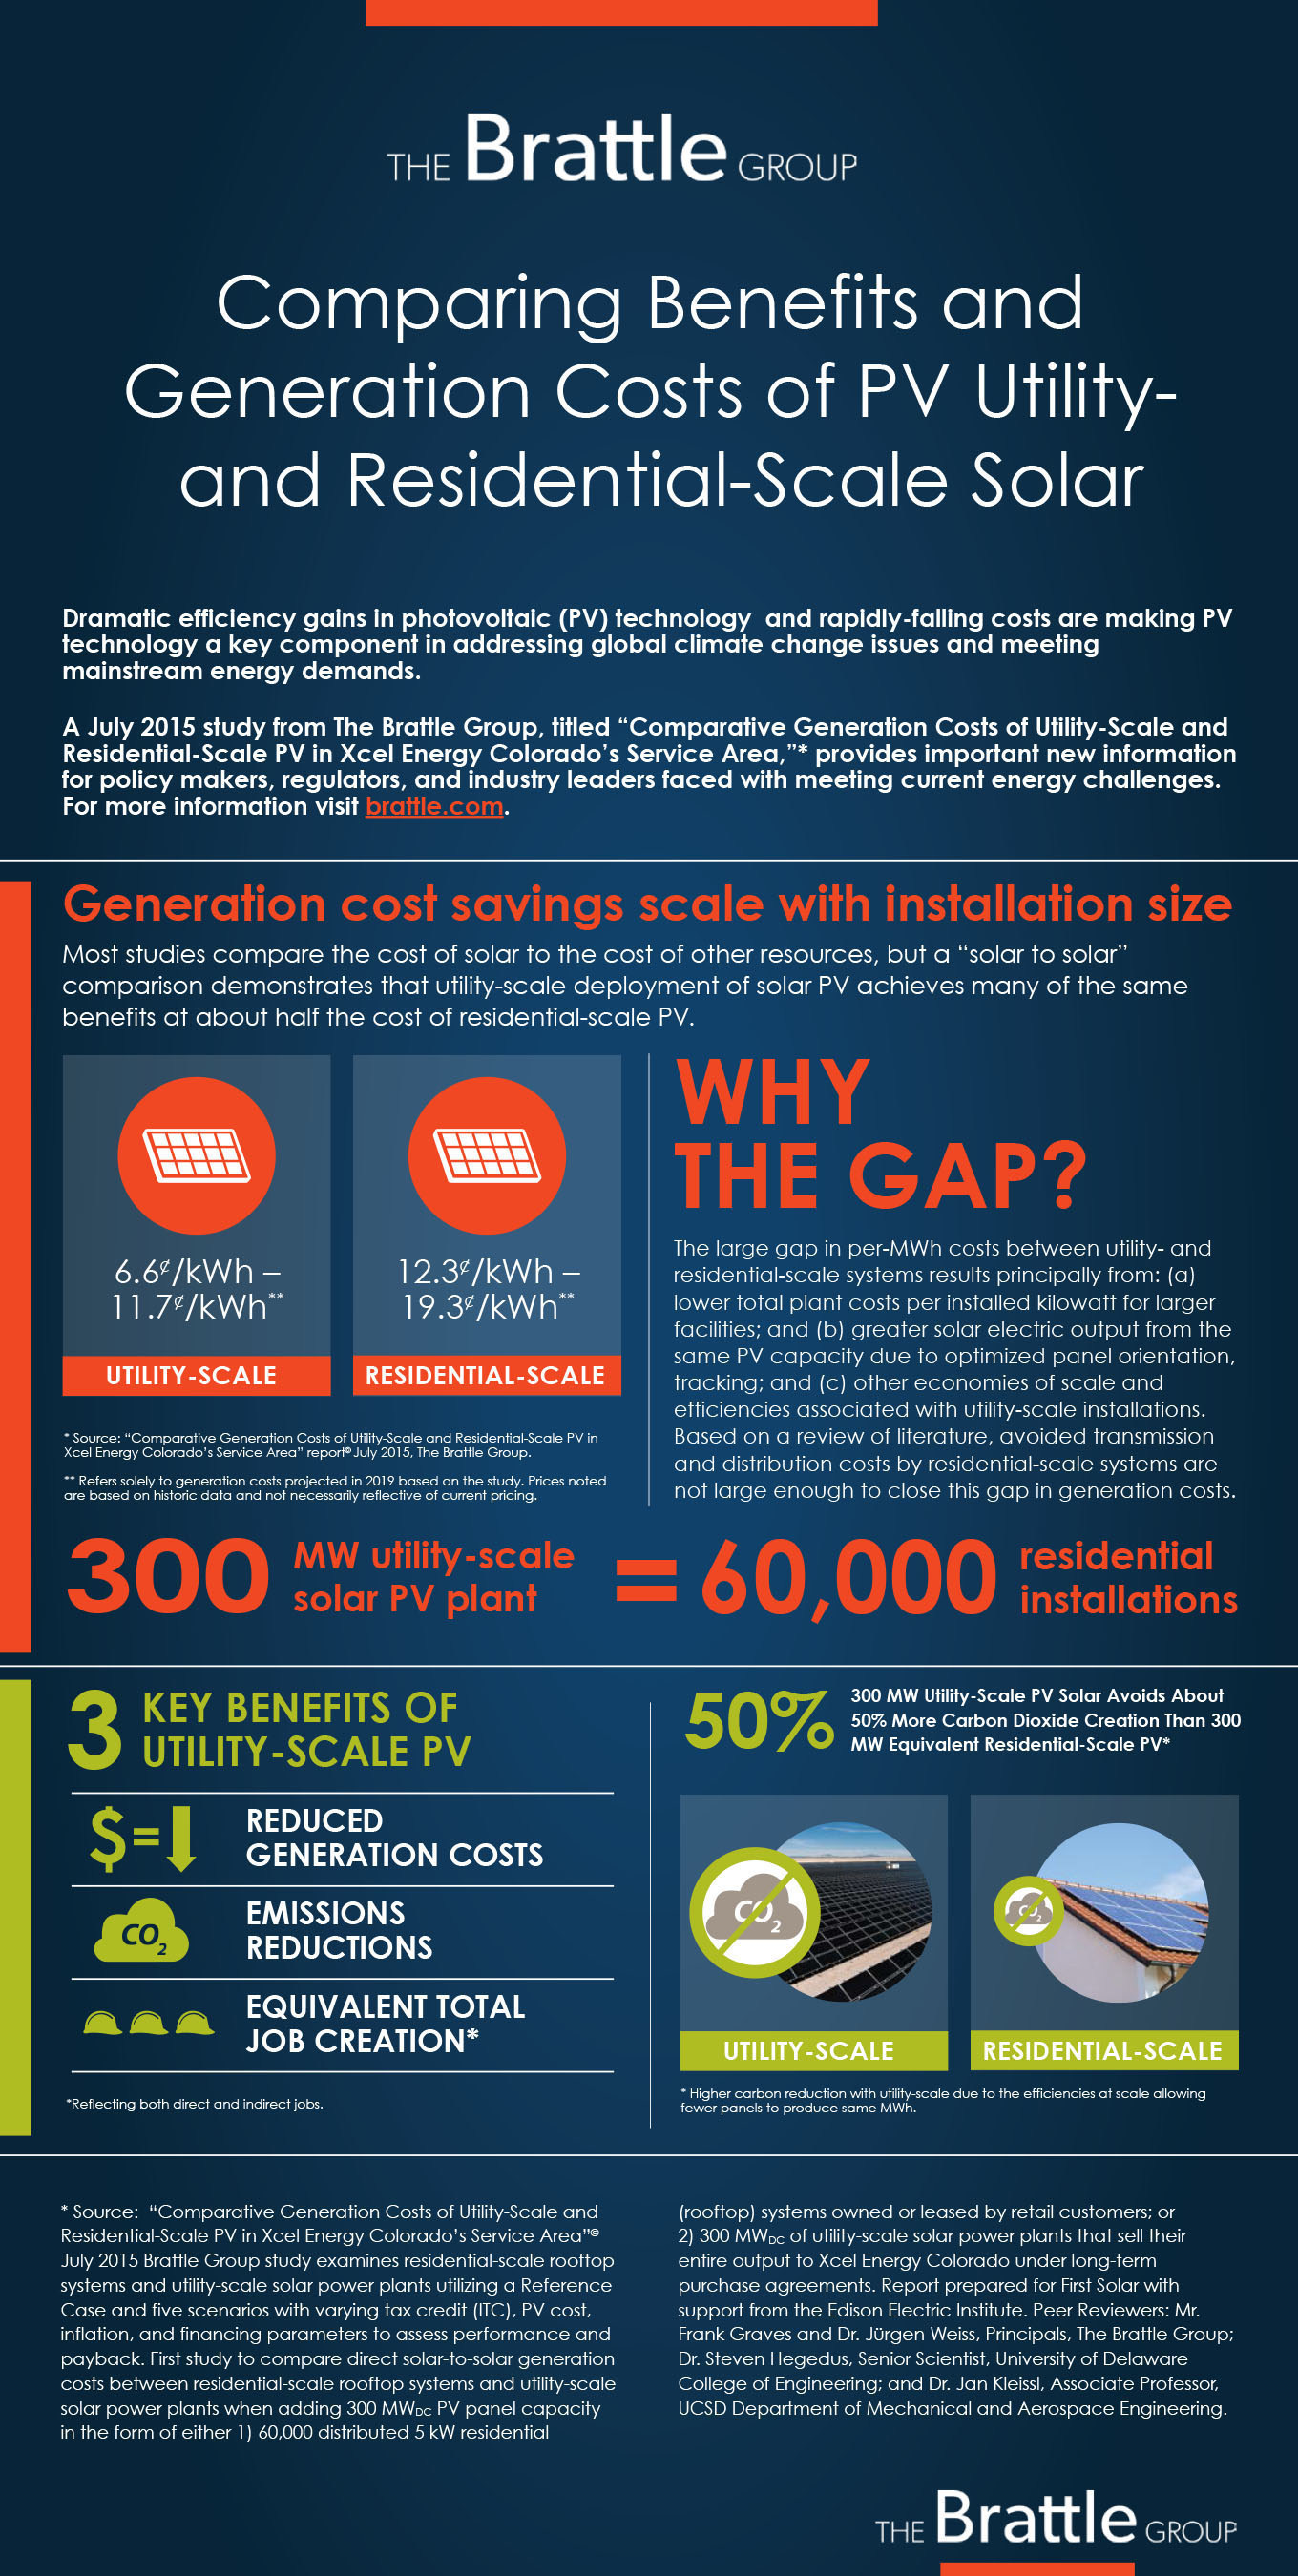 Comparing Benefits and Generation Costs of PV Utility- and Residential-Scale Solar (PRNewsFoto/The Brattle Group)